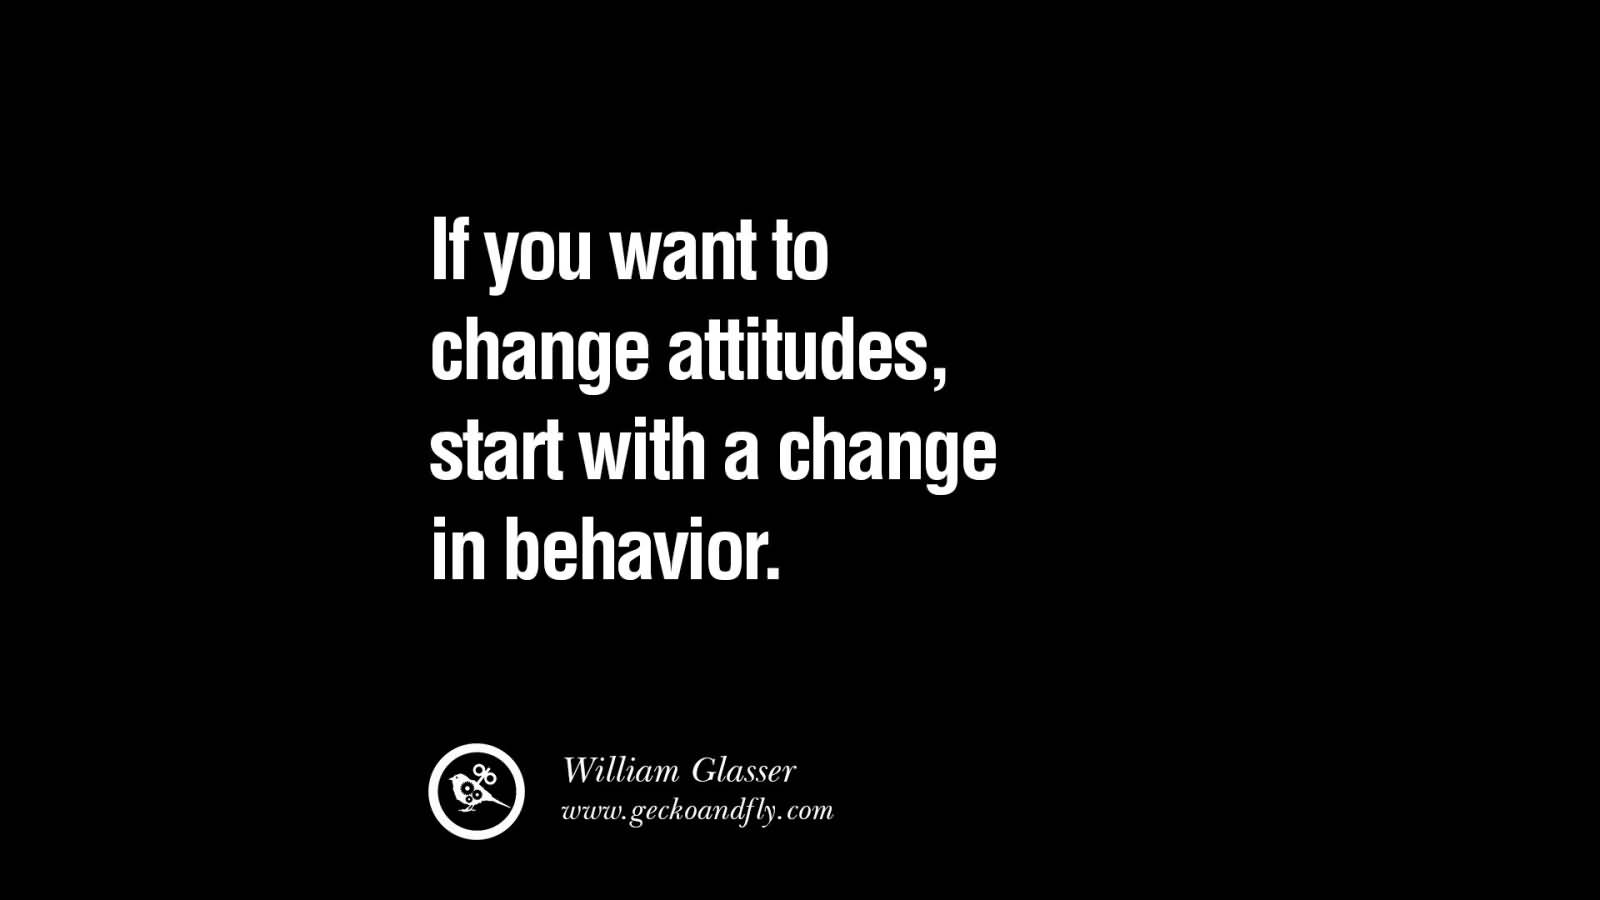 If you want to change attitudes, start with a change in behavior. William Glasser